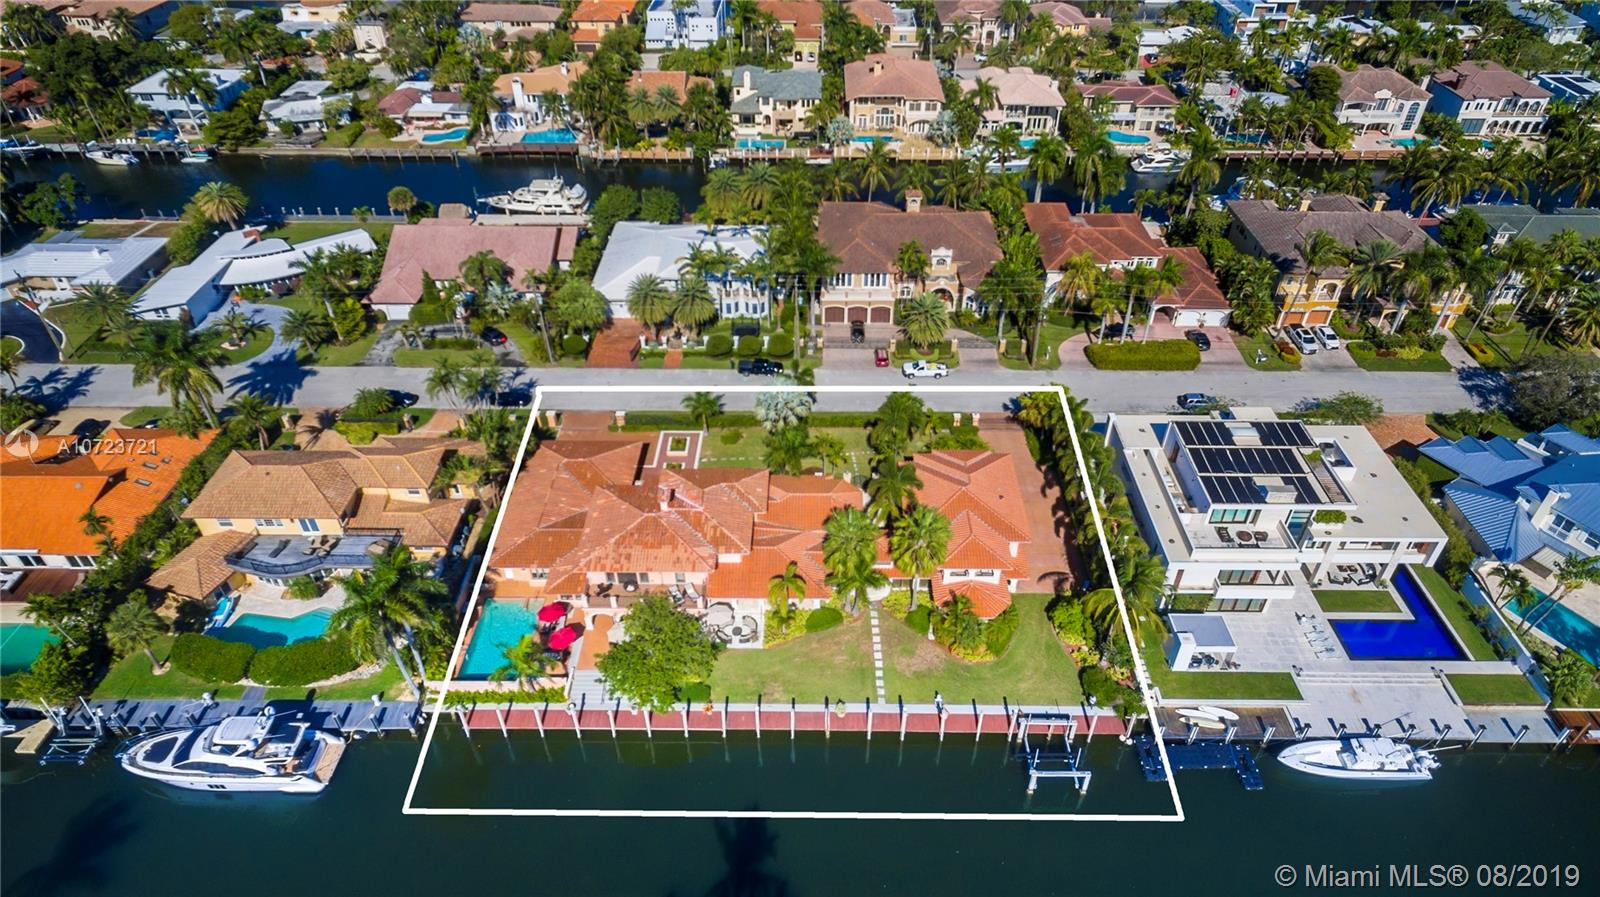 Stunning estate sitting on 200 feet of deep prime water frontage in the heart of Ft Lauderdale. This Yacht-mans paradise is situated in the prestigious Seven Isles, boasting over 8,000 sq ft of living area and over 26,024 sq ft of total land. Renovated impeccably, open kitchen area overlooking living area, a true entertainers mansion.